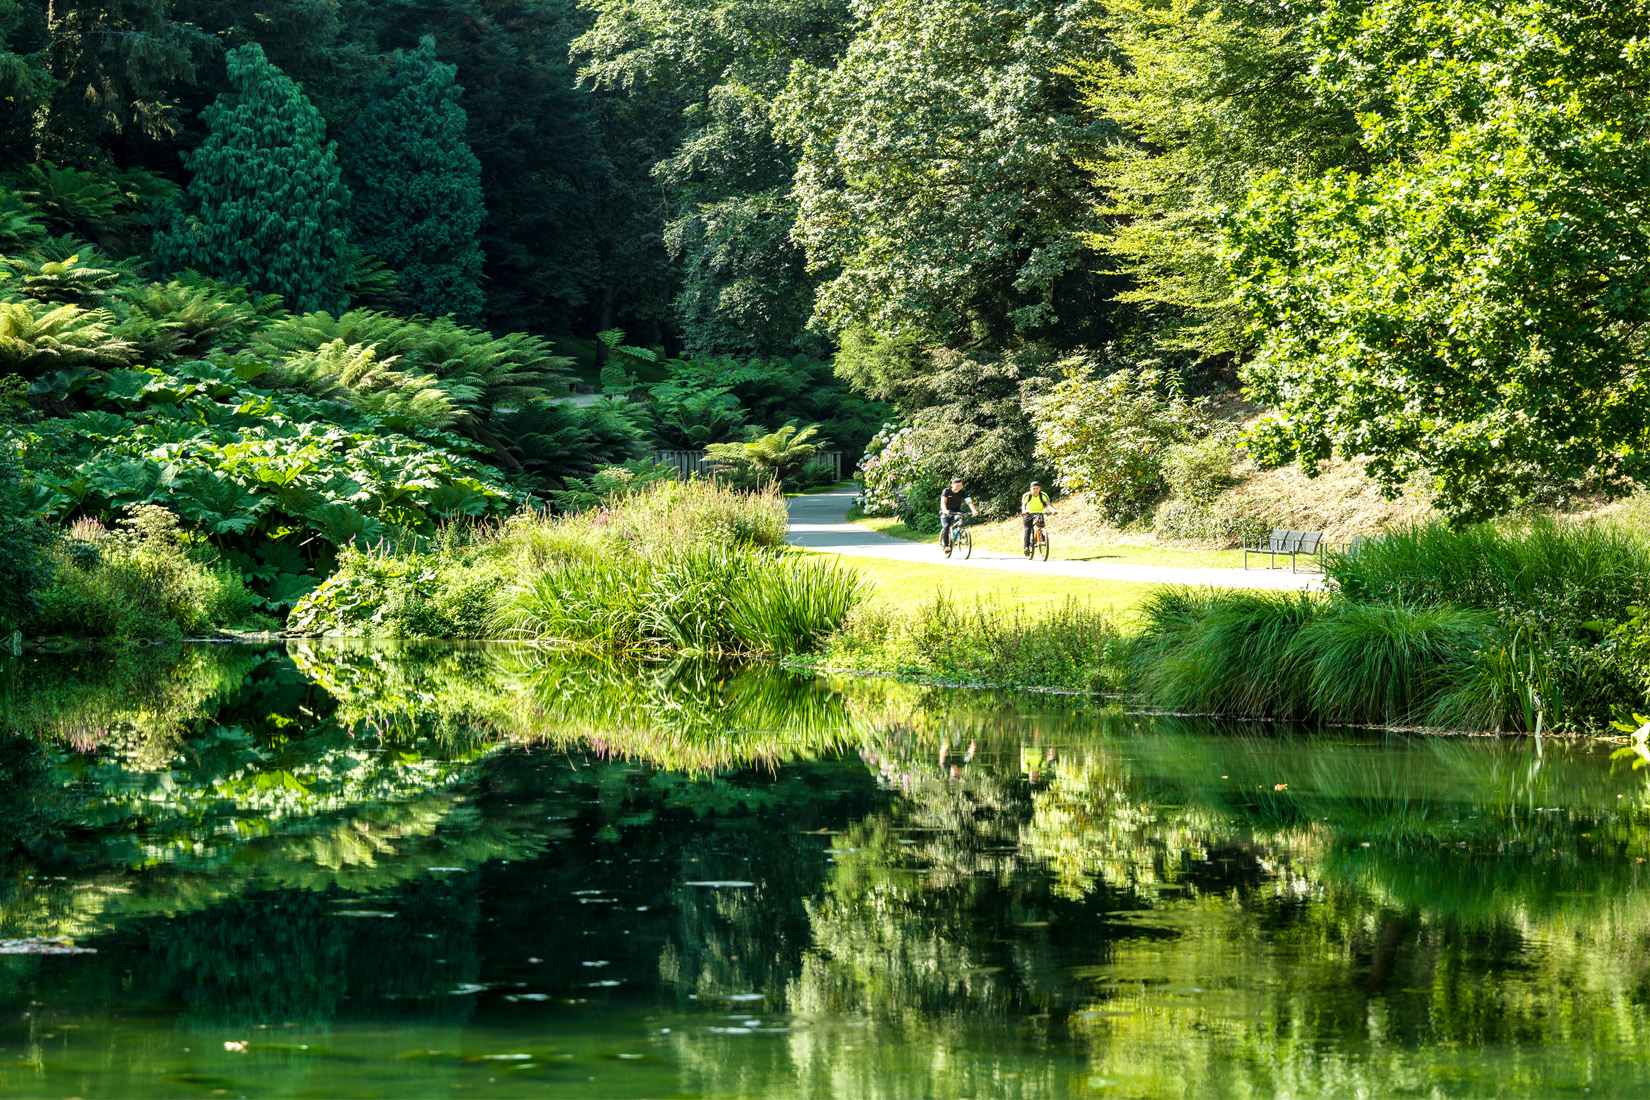 Nationales botanische Konservatorium von Brest © Tourist Office of Brest Metropole